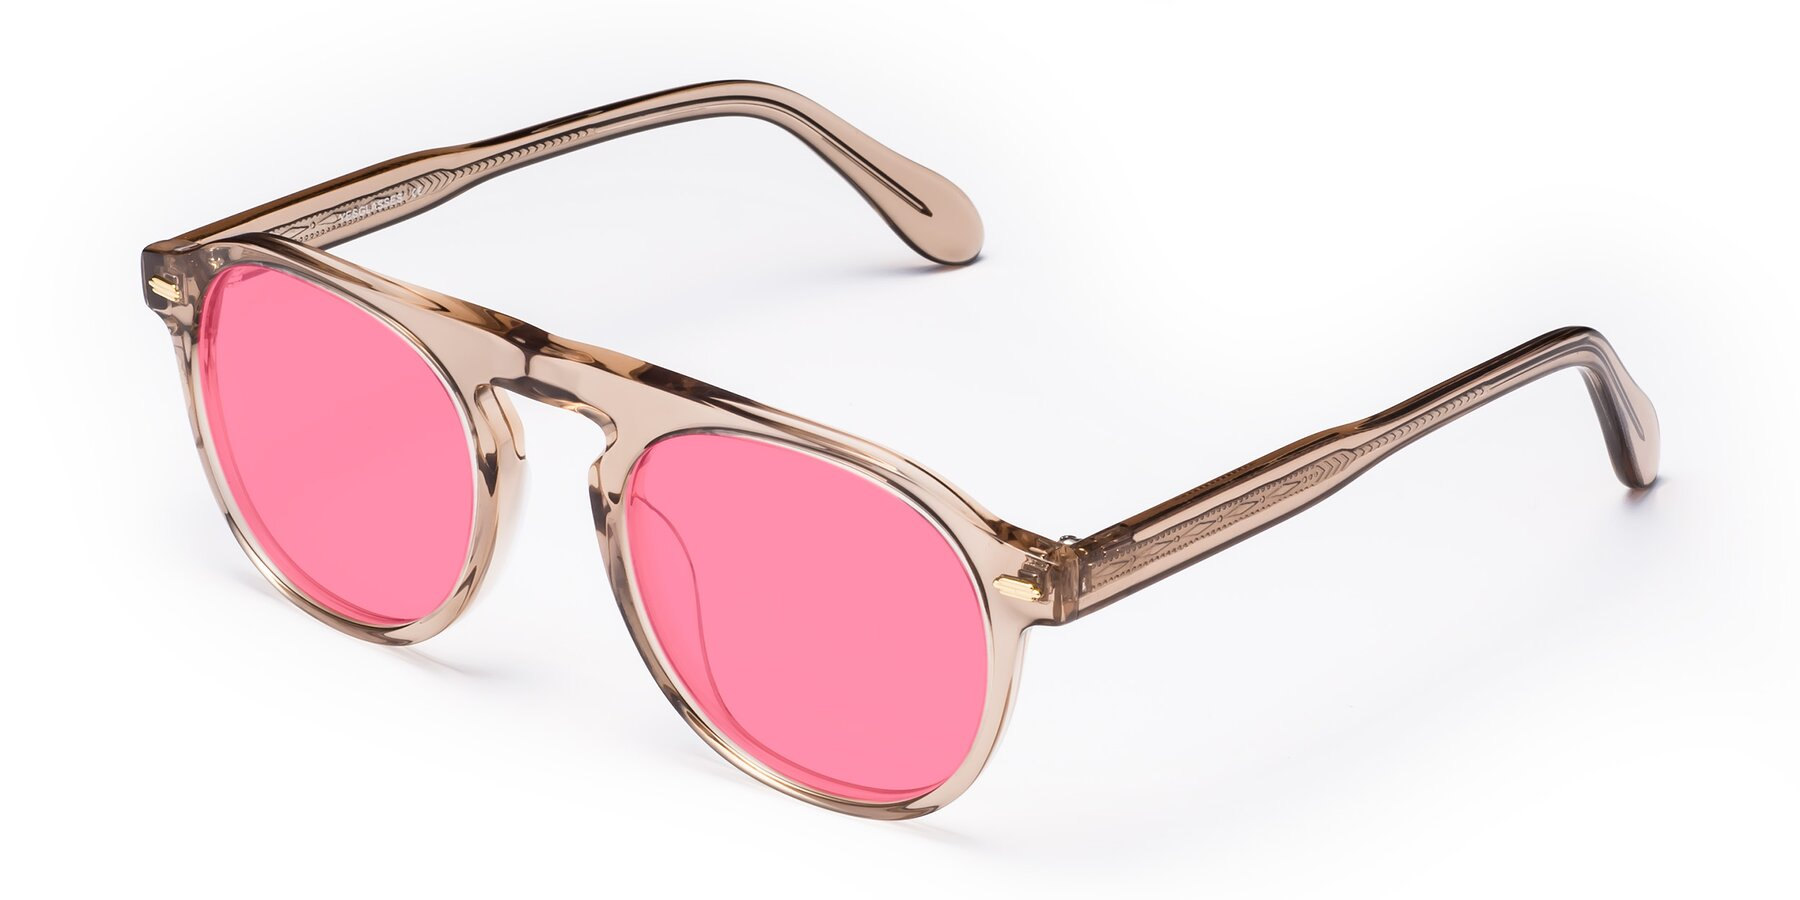 Angle of Mufasa in light Brown with Pink Tinted Lenses